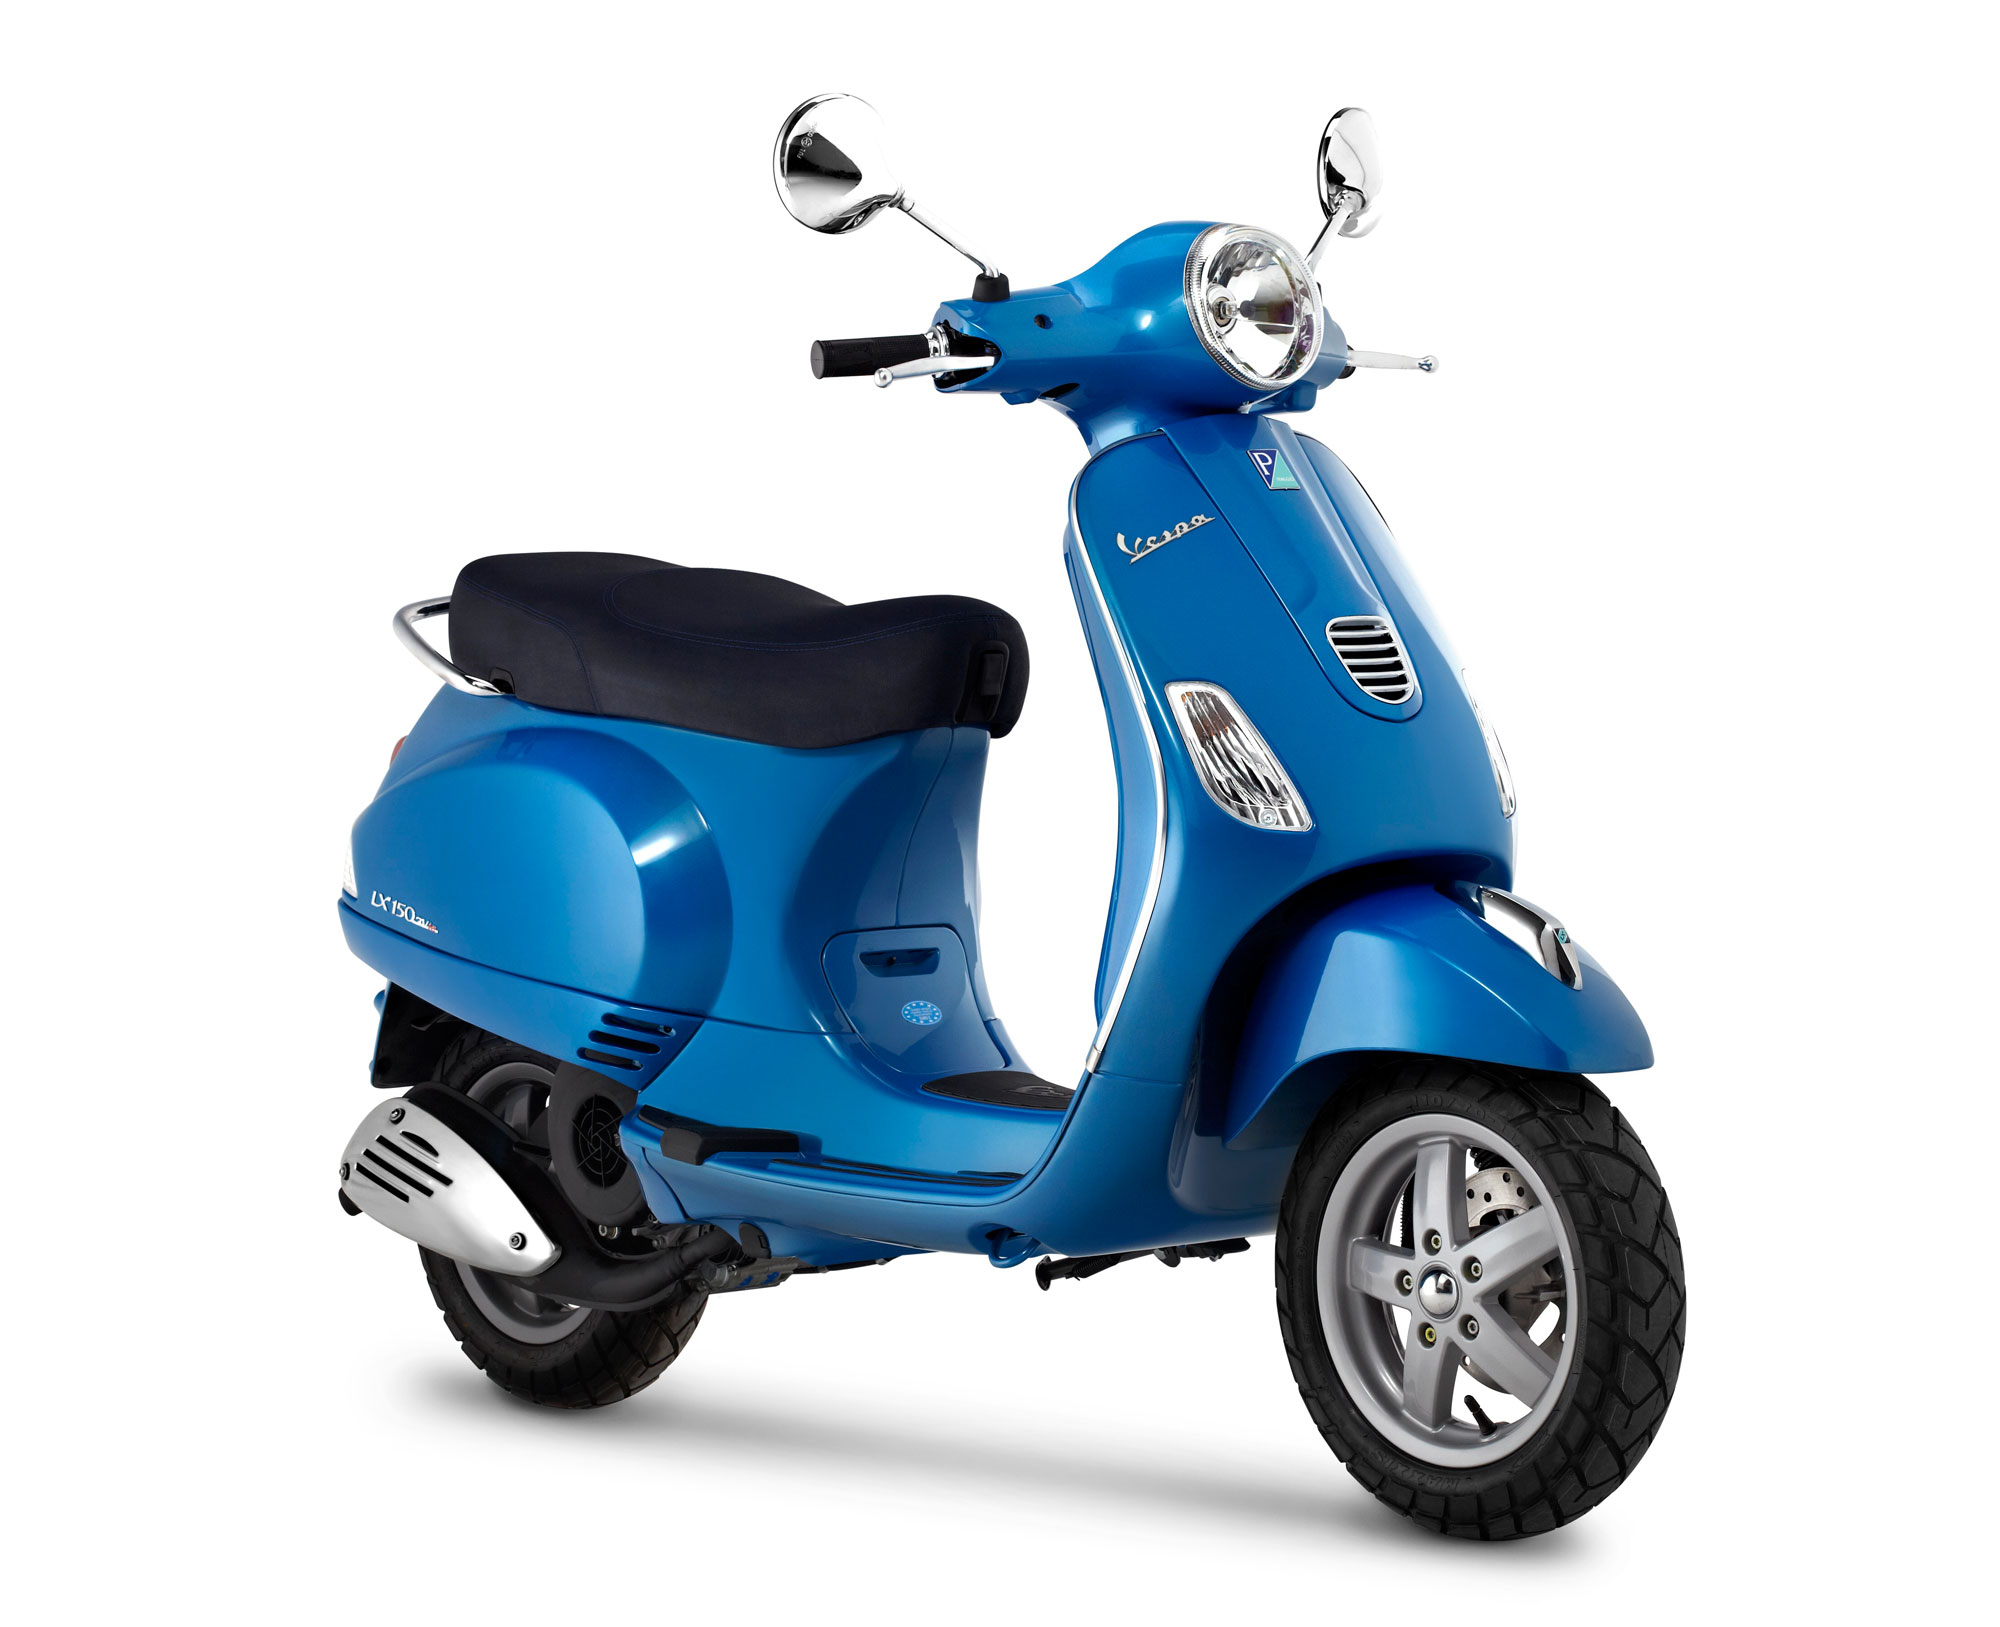 Moto vespa 150 photo - 7